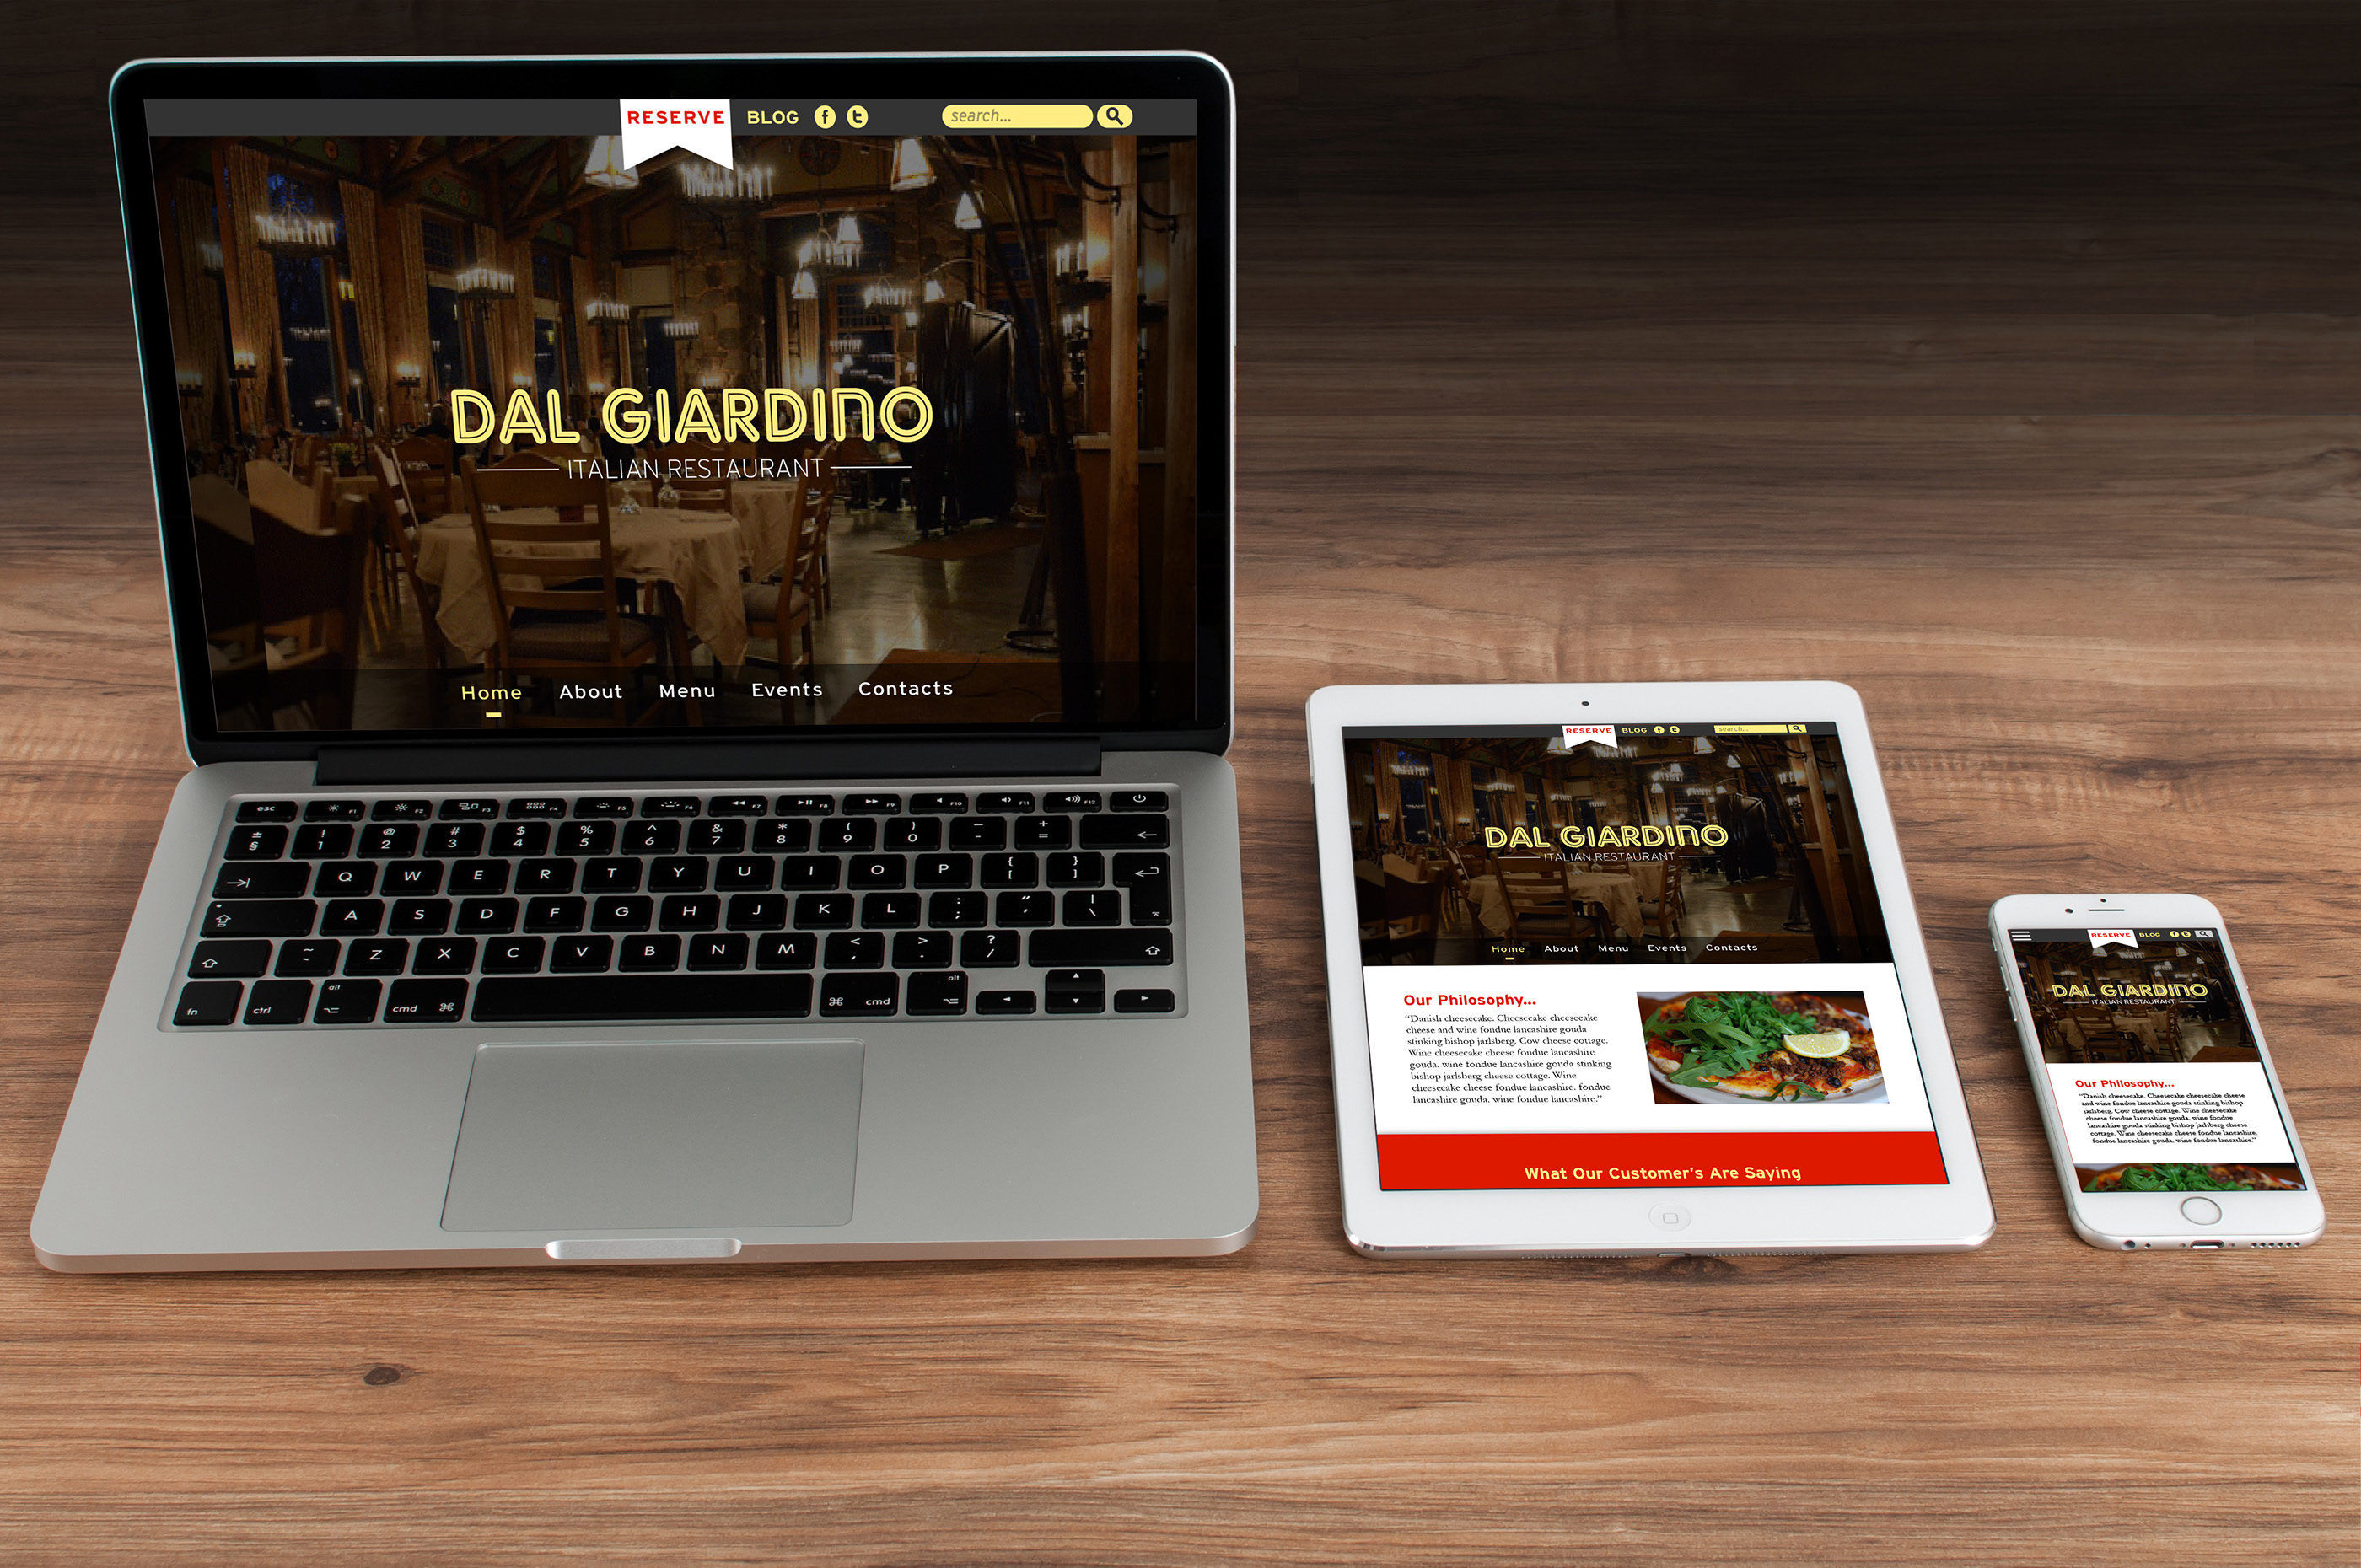 Italian Restaurant Redesign School Project On Behance